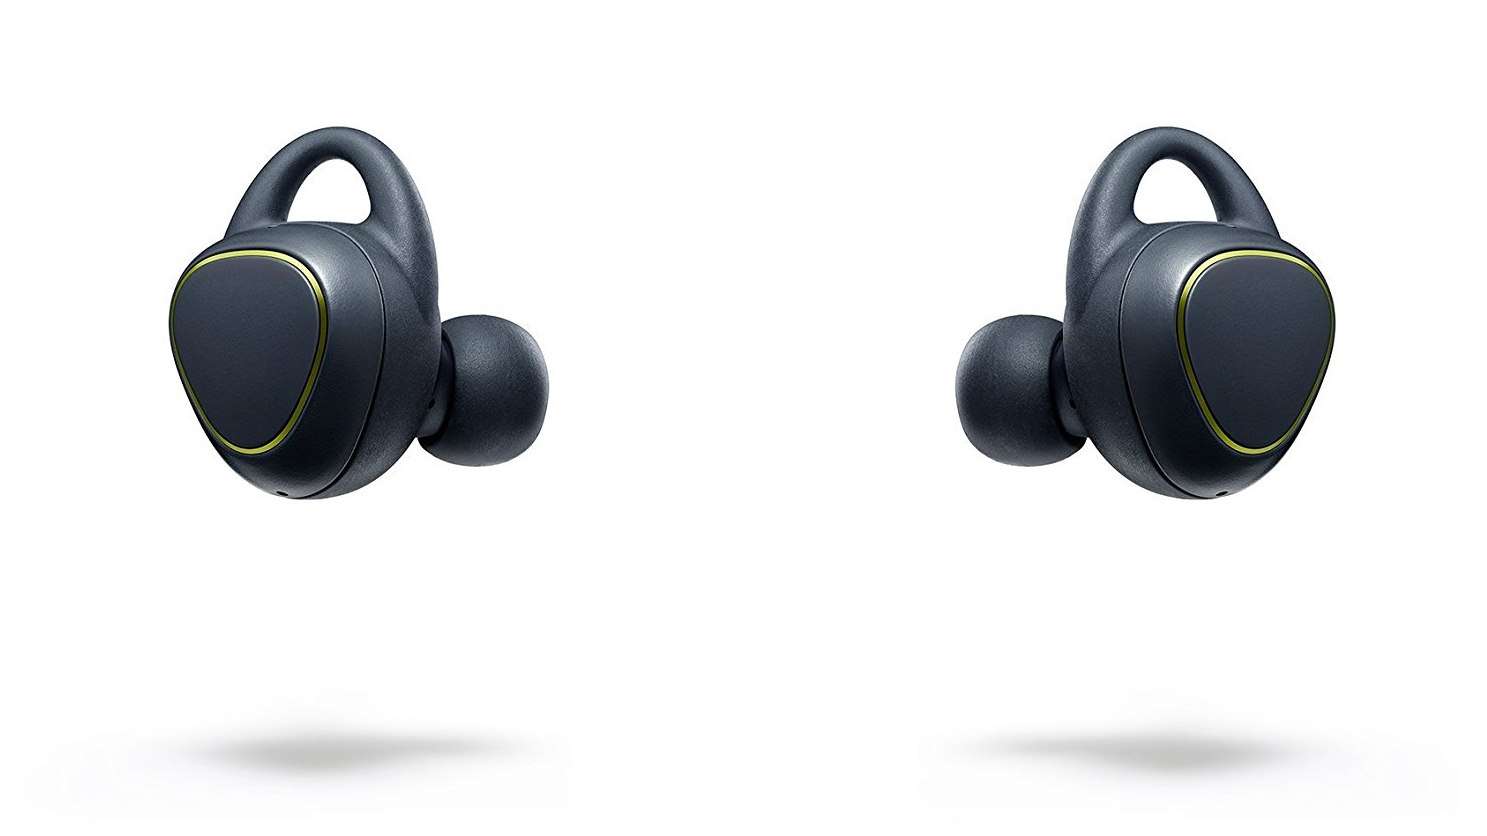 Samsung Gear IconX wireless earphones